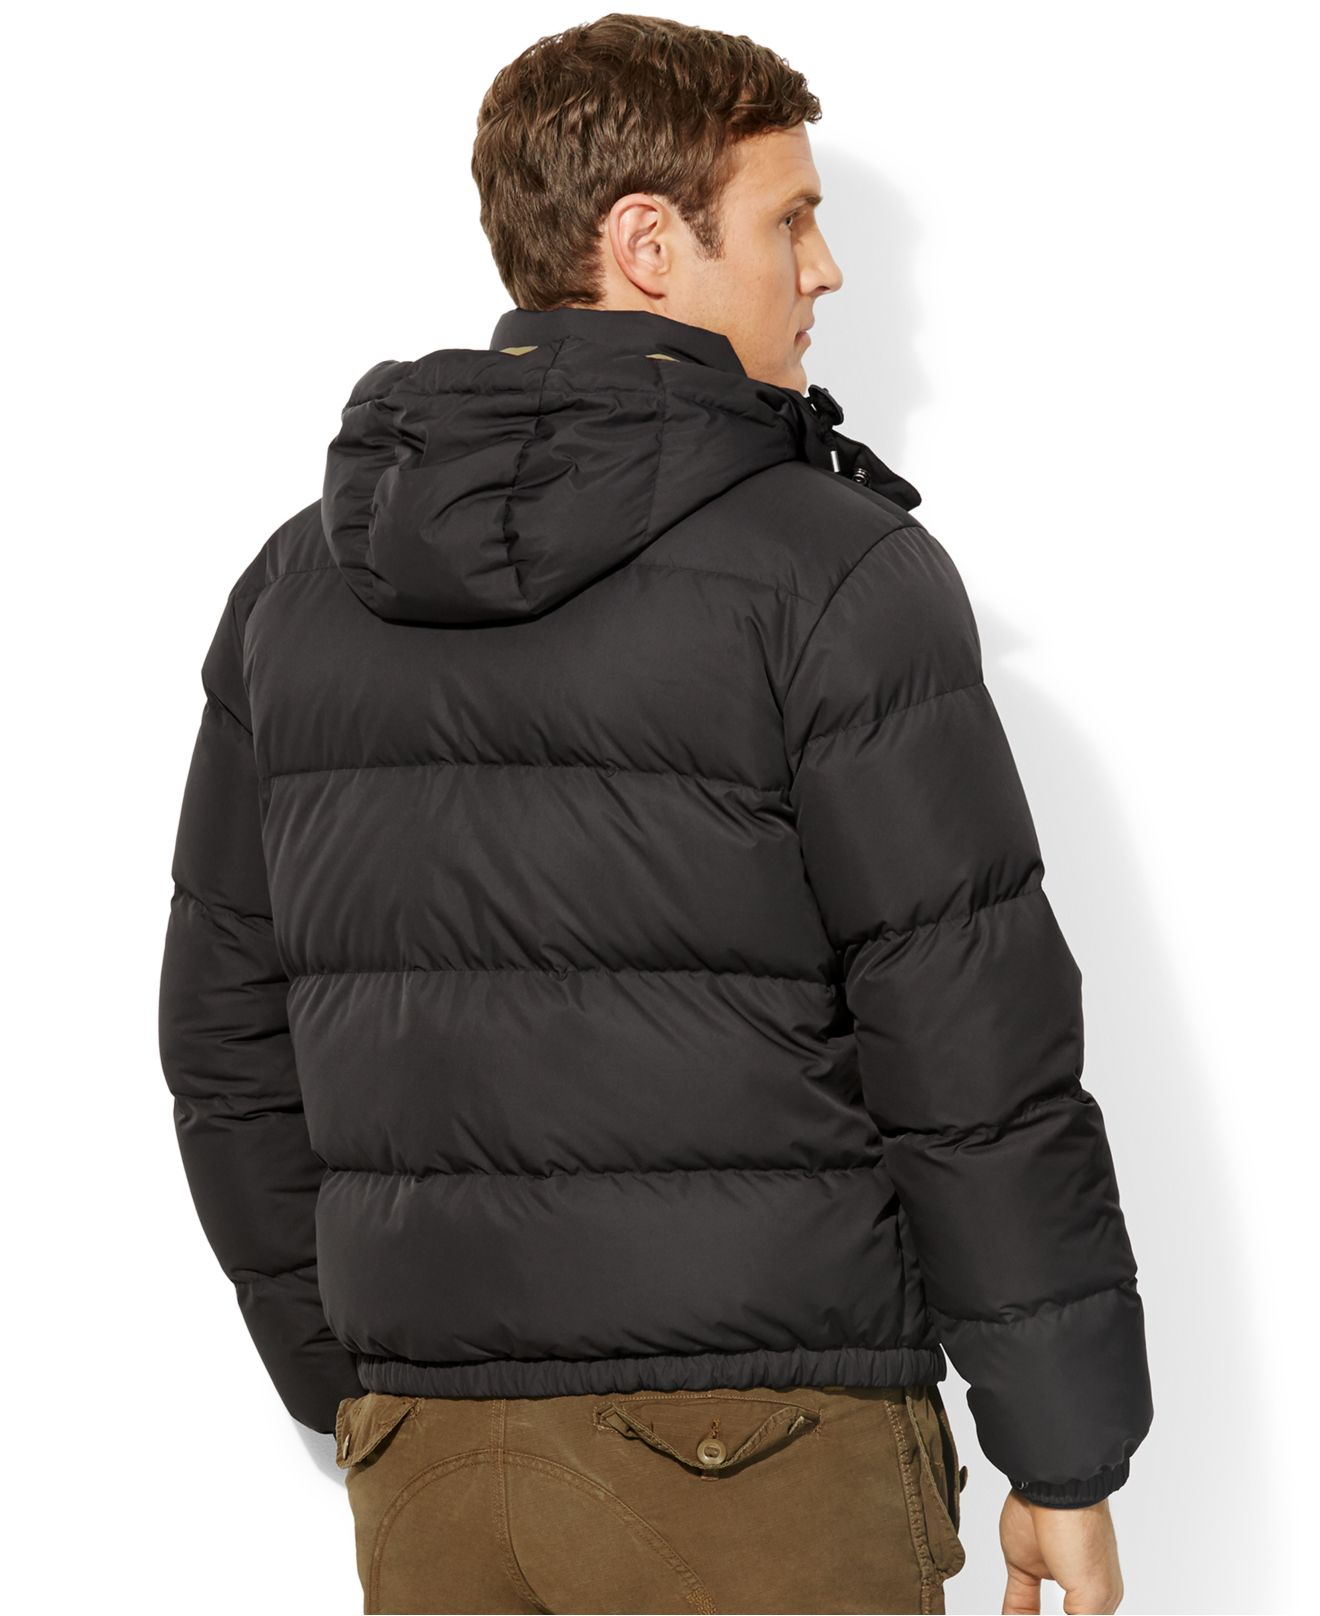 Black Jacket Big Puffer Men Down For Emwood Ralph Polo Lauren And Tall vwNm8n0